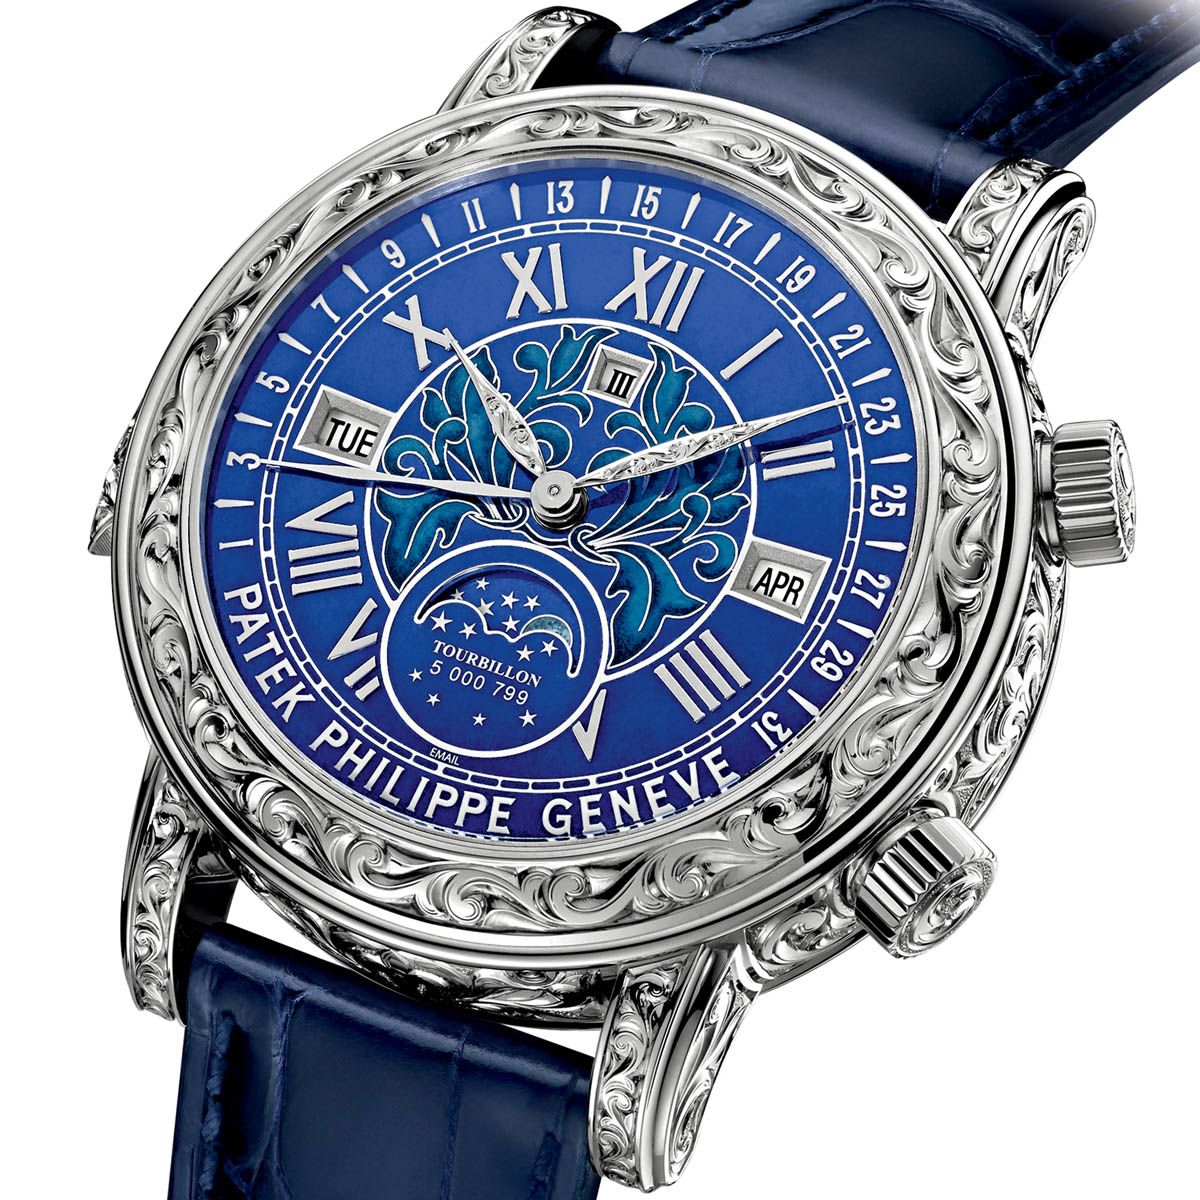 The watch quote photo patek philippe sky moon tourbillon ref 6002 for Patek philippe tourbillon